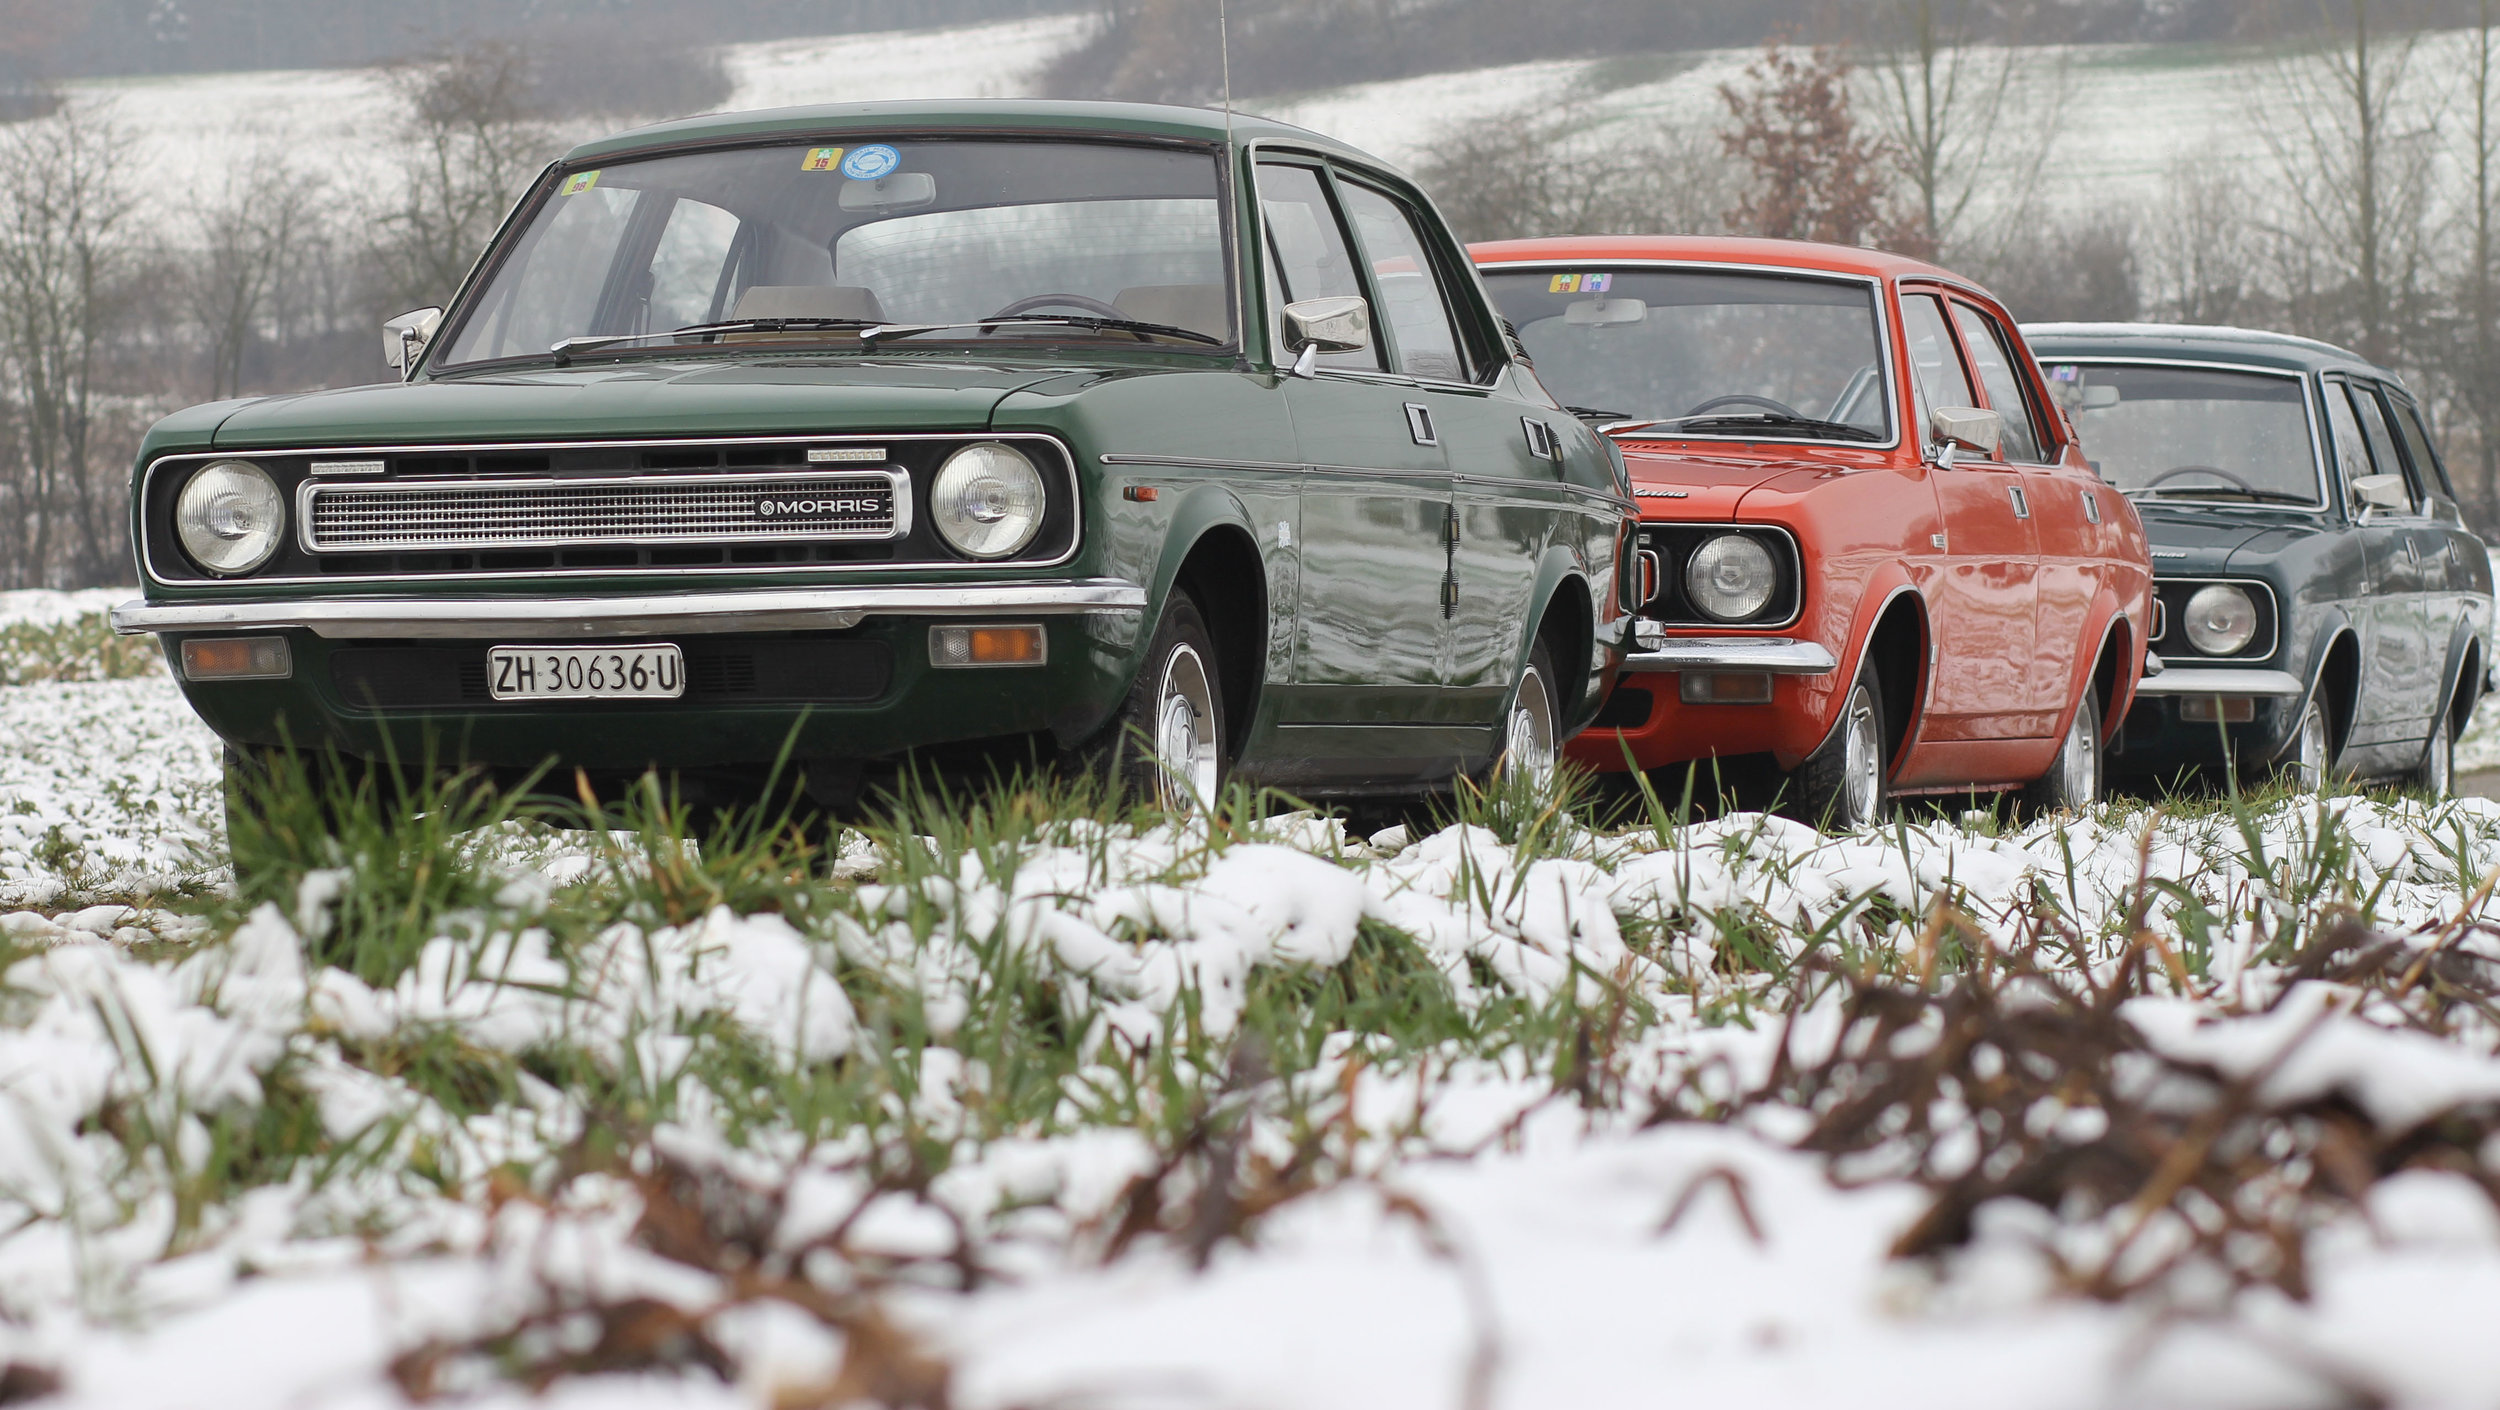 We had assumed Swiss engineer and BL enthusiast Peter Haas would use a modern vehicle for his daily duties but, as it turns out, the 'company workhorse' is a Morris Marina. His role involves driving vast distances across the Alps in order to inspect his country's power plants – typically 200-600km a day - and for this, he uses a MkI Estate, which he bought in 2004. 'It has 325,000km on the clock and it is still on its original engine. All I have done is give it two head gaskets and a lead-free conversion. Why would I want a modern car? I can do all the repairs on the Marina myself and it is fine in the snow!' For the full story, check out the new issue of Practical Classics…